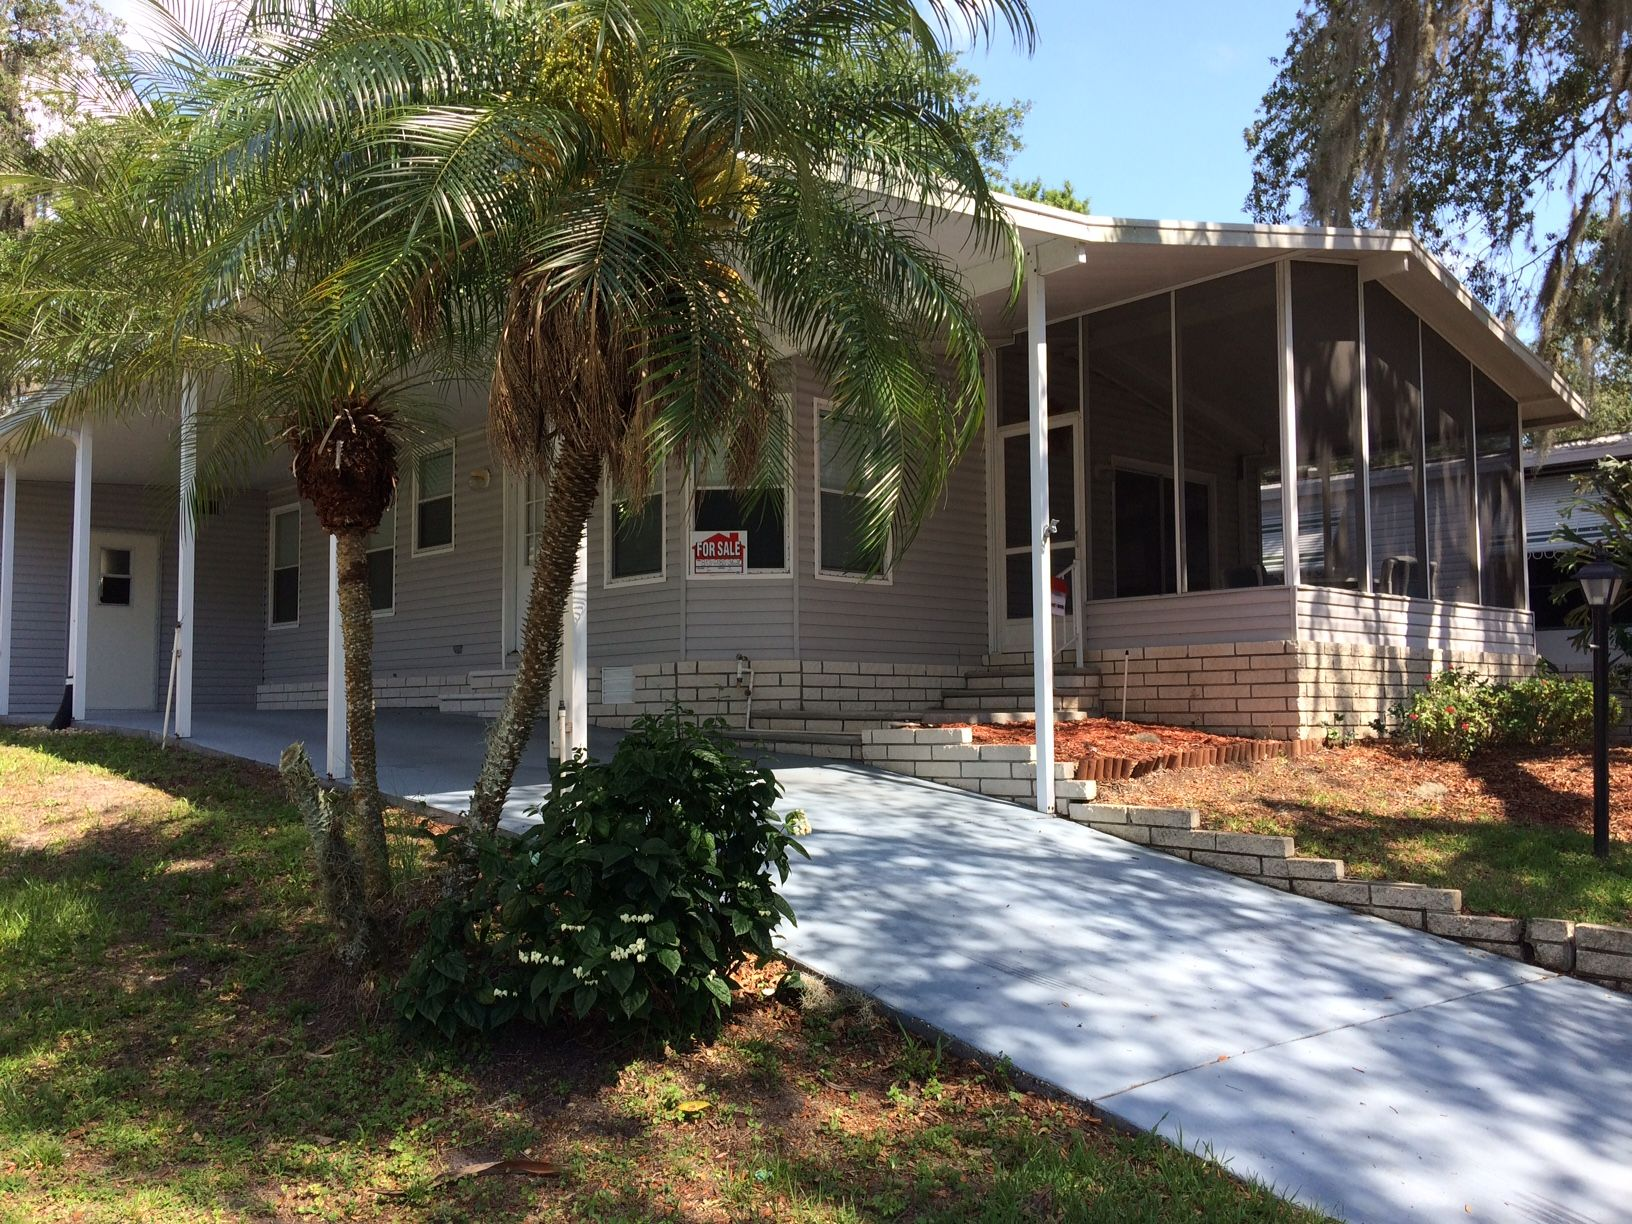 10313 Oak Forest Dr, Riverview, FL 33569 - 2 Bed, 2 Bath  Mobile/Manufactured - 16 Photos | Trulia